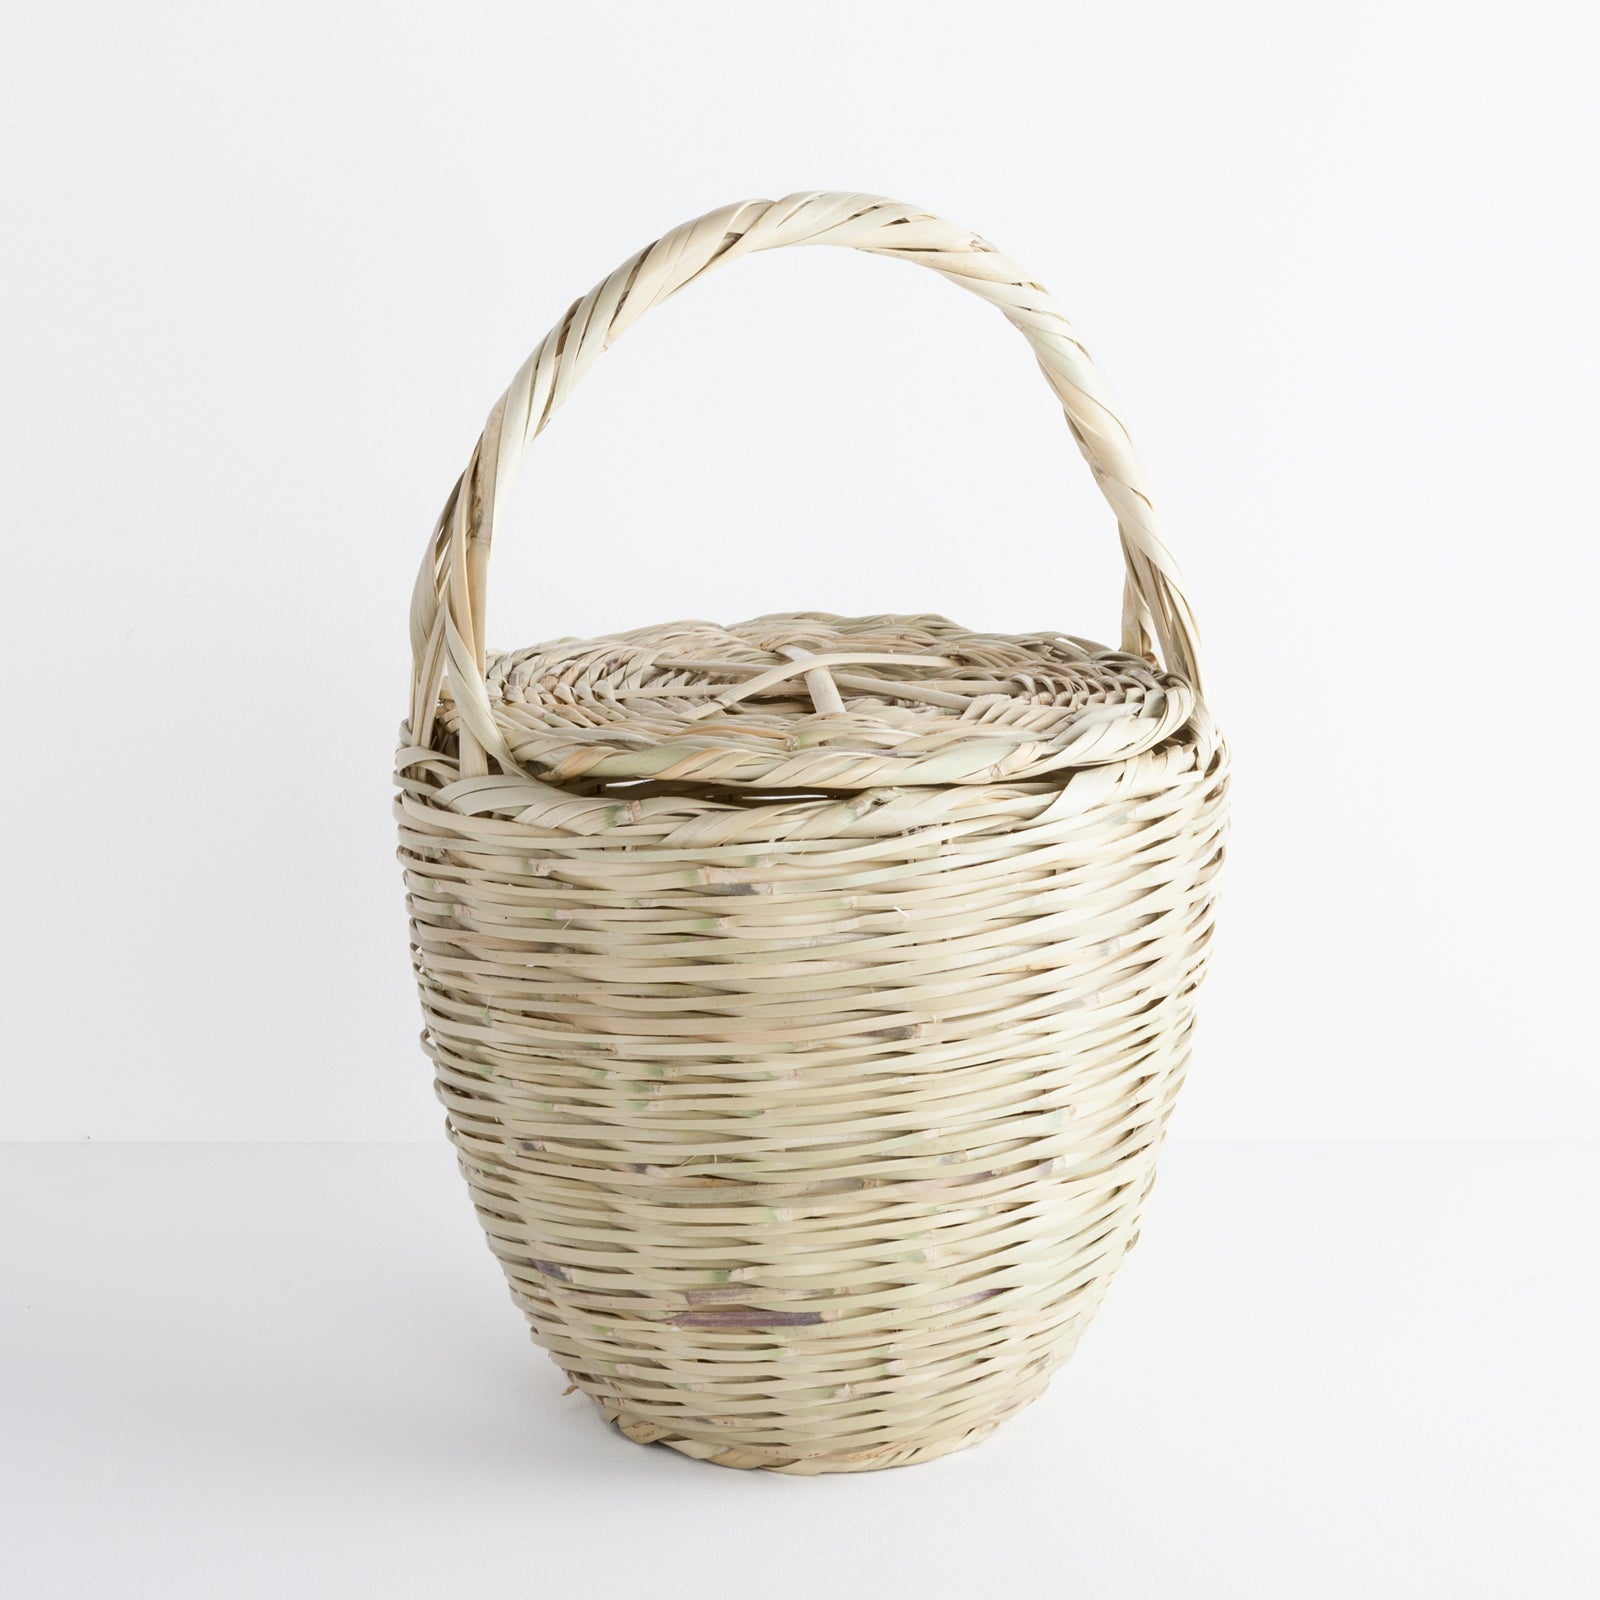 Portuguese Fishing Basket